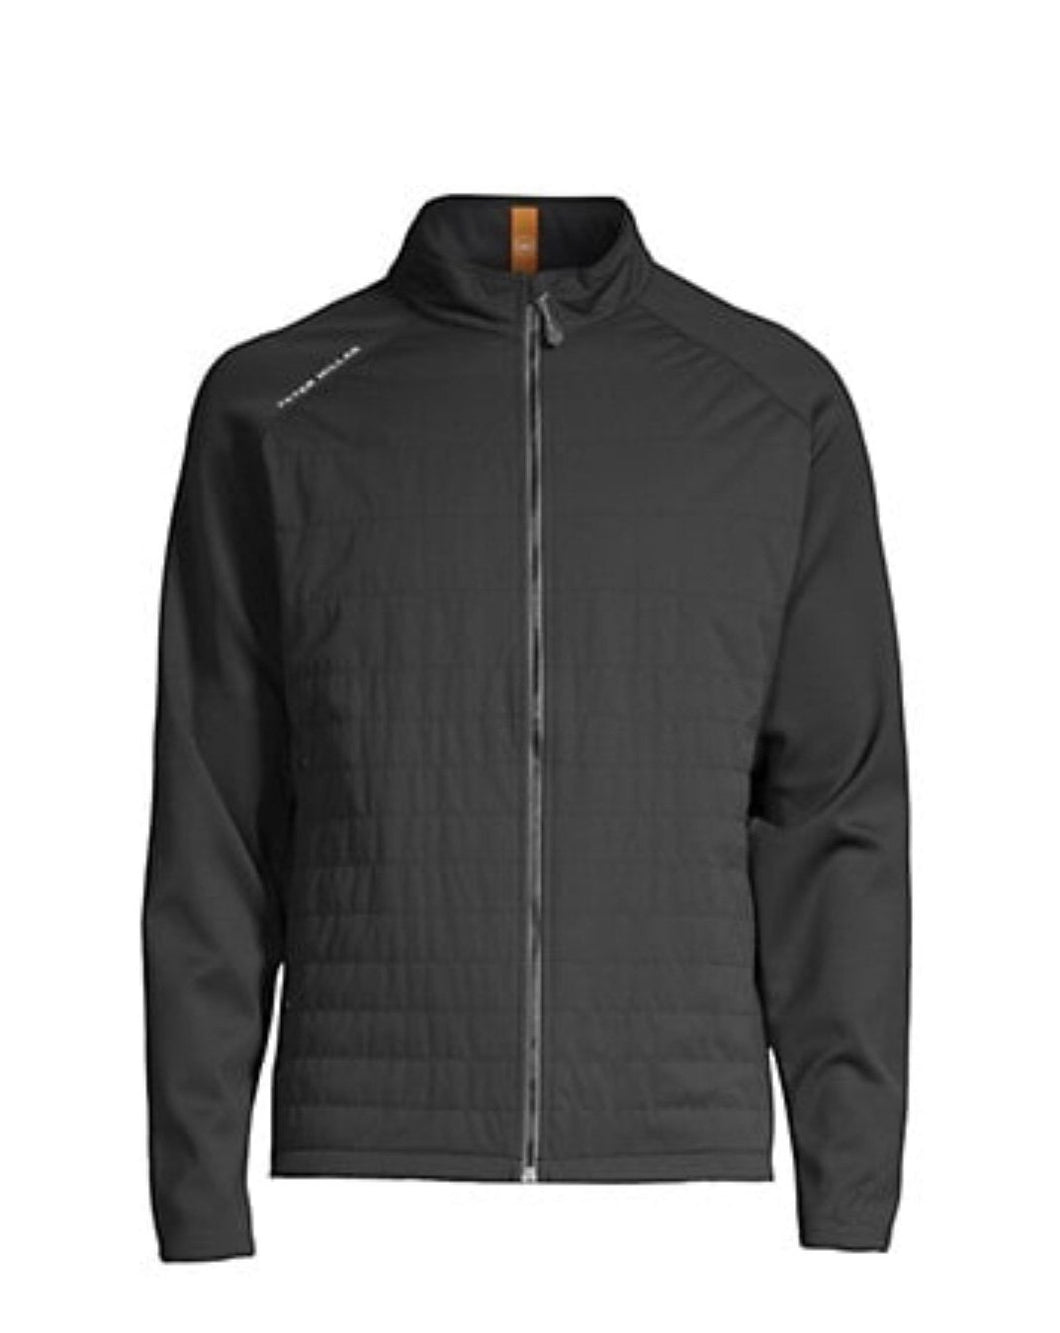 Peter Millar Hyperlight Merge Hybrid Jacket